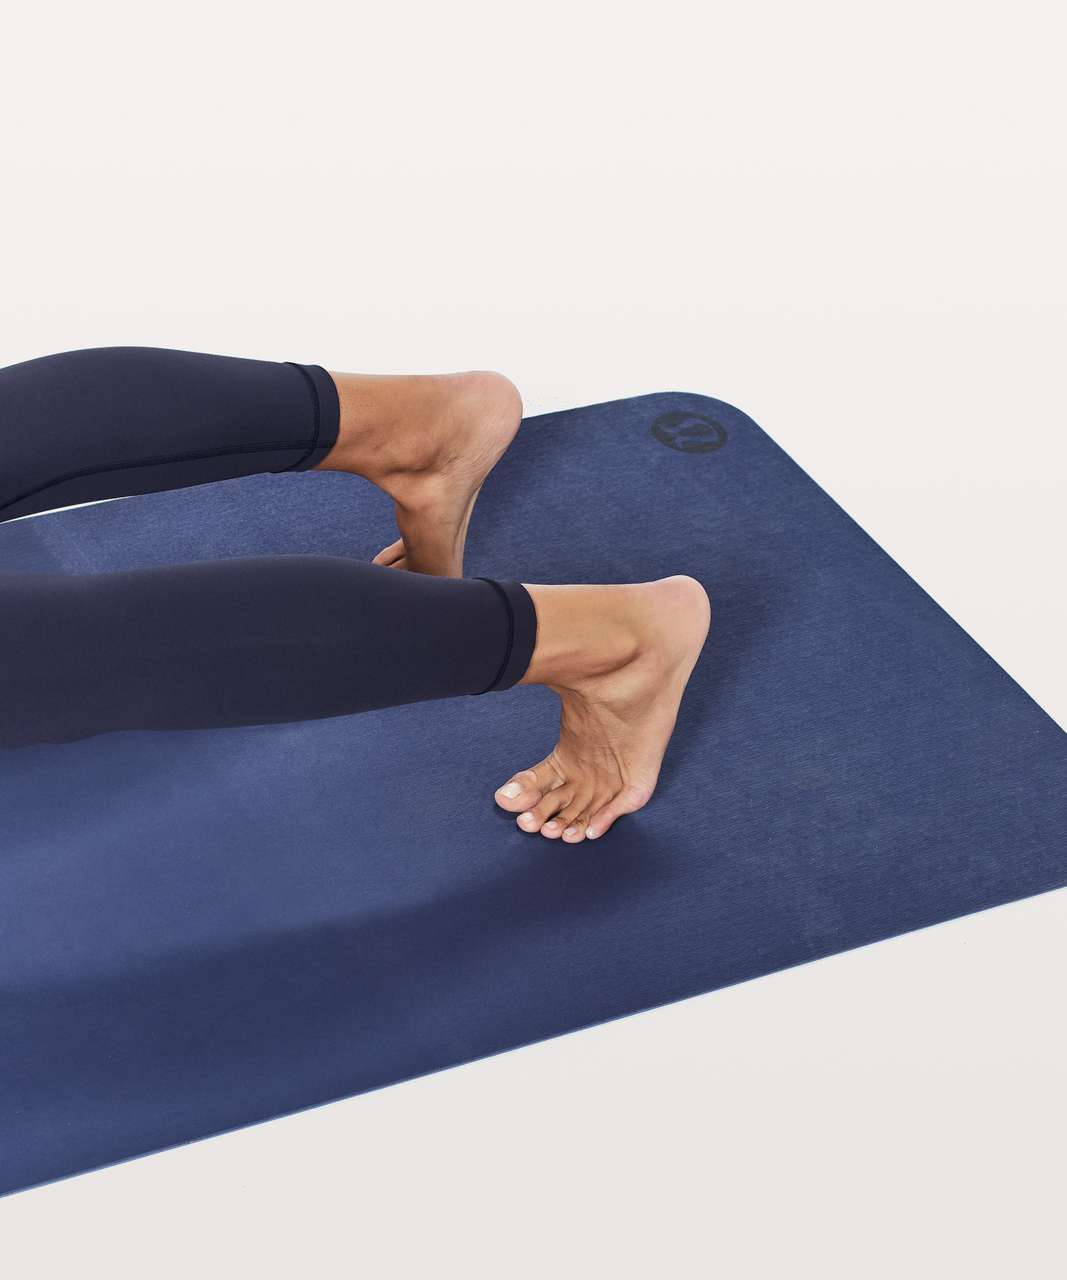 Lululemon Namastay Mat - Moody Blues / Brilliant Blue